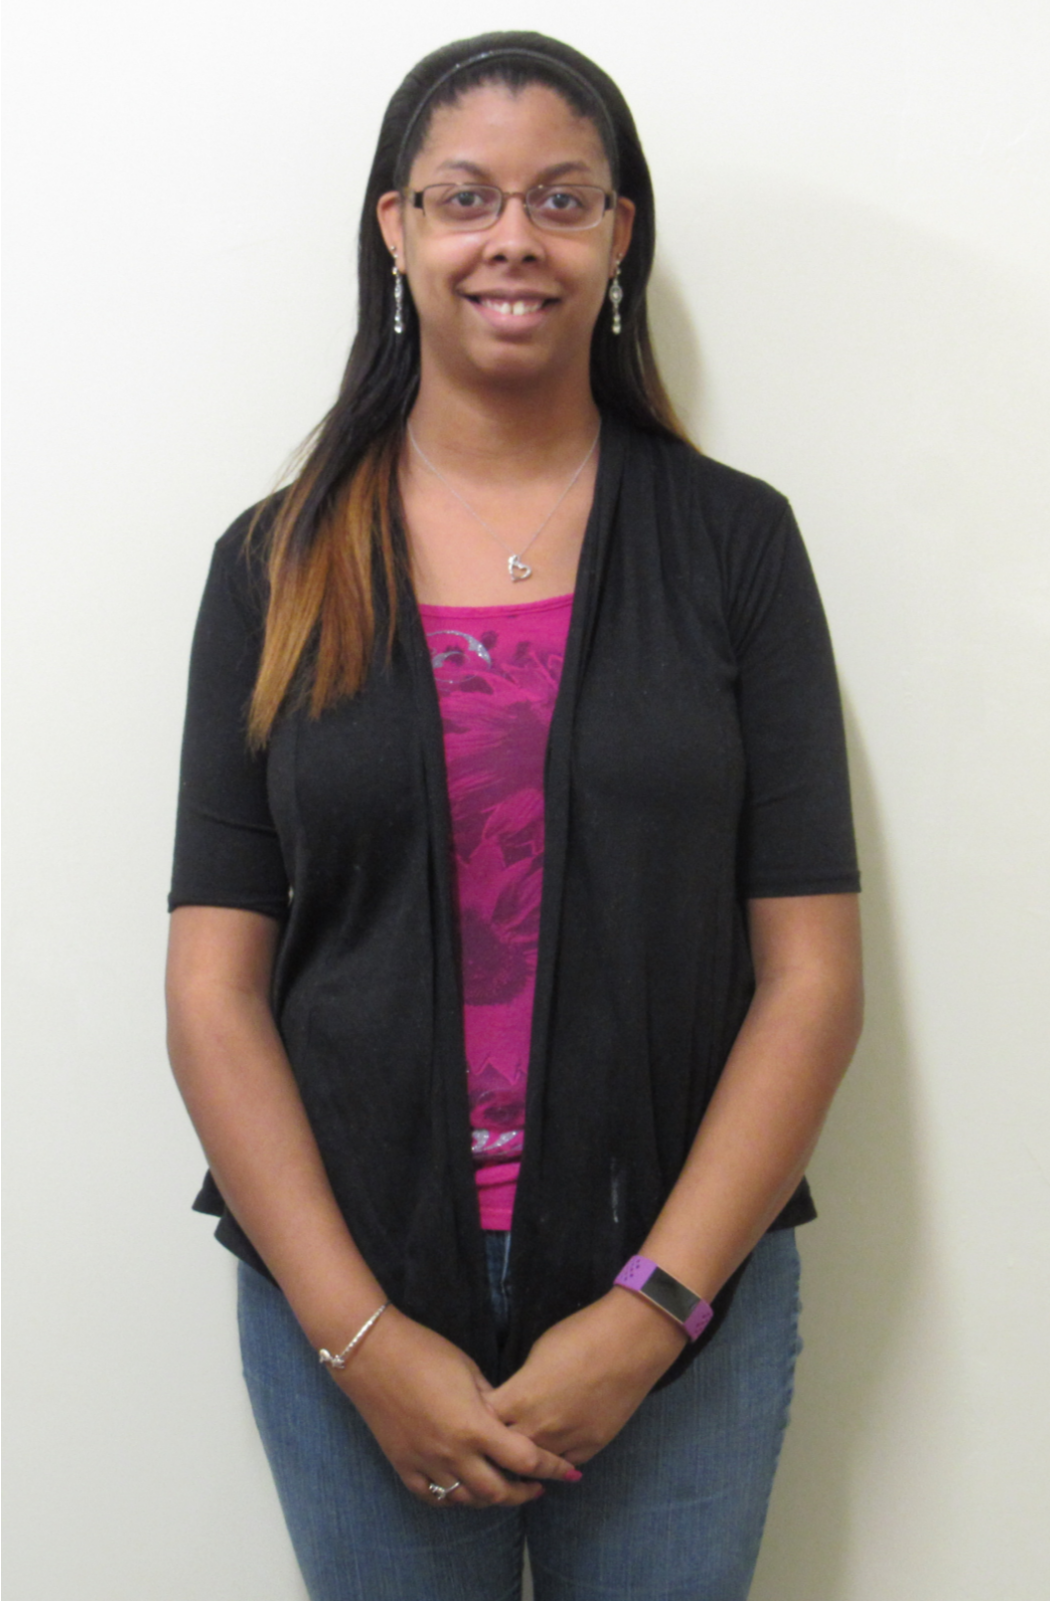 Director of Food Services - Moriyah Claxton